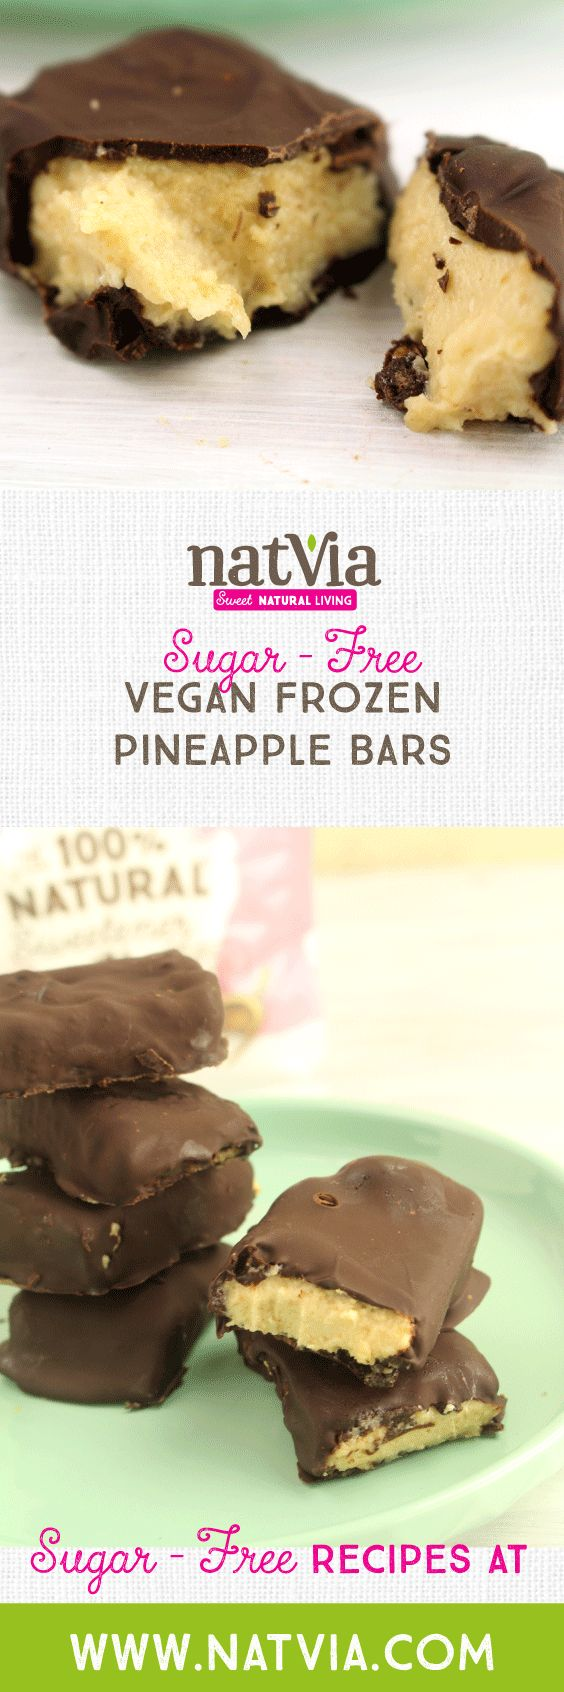 Sweet sweet #pineapple  You've had it straight from the can, on top of your pizza and now in our delicious refined #chocolate  #chocolate bar!  You'll love the tropical-infused flavour, ice-cold and perfect for #summer! Give this #Vegan #Frozen #Pineapple Bars a go and let us know what you think in the comments below!  - Ingredients - 1 cup cashews 60g sugar-free vegan #cookies ¾ cup fresh pineapple, diced 2 tbs Natvia 200g sugar-free milk or dark #chocolate